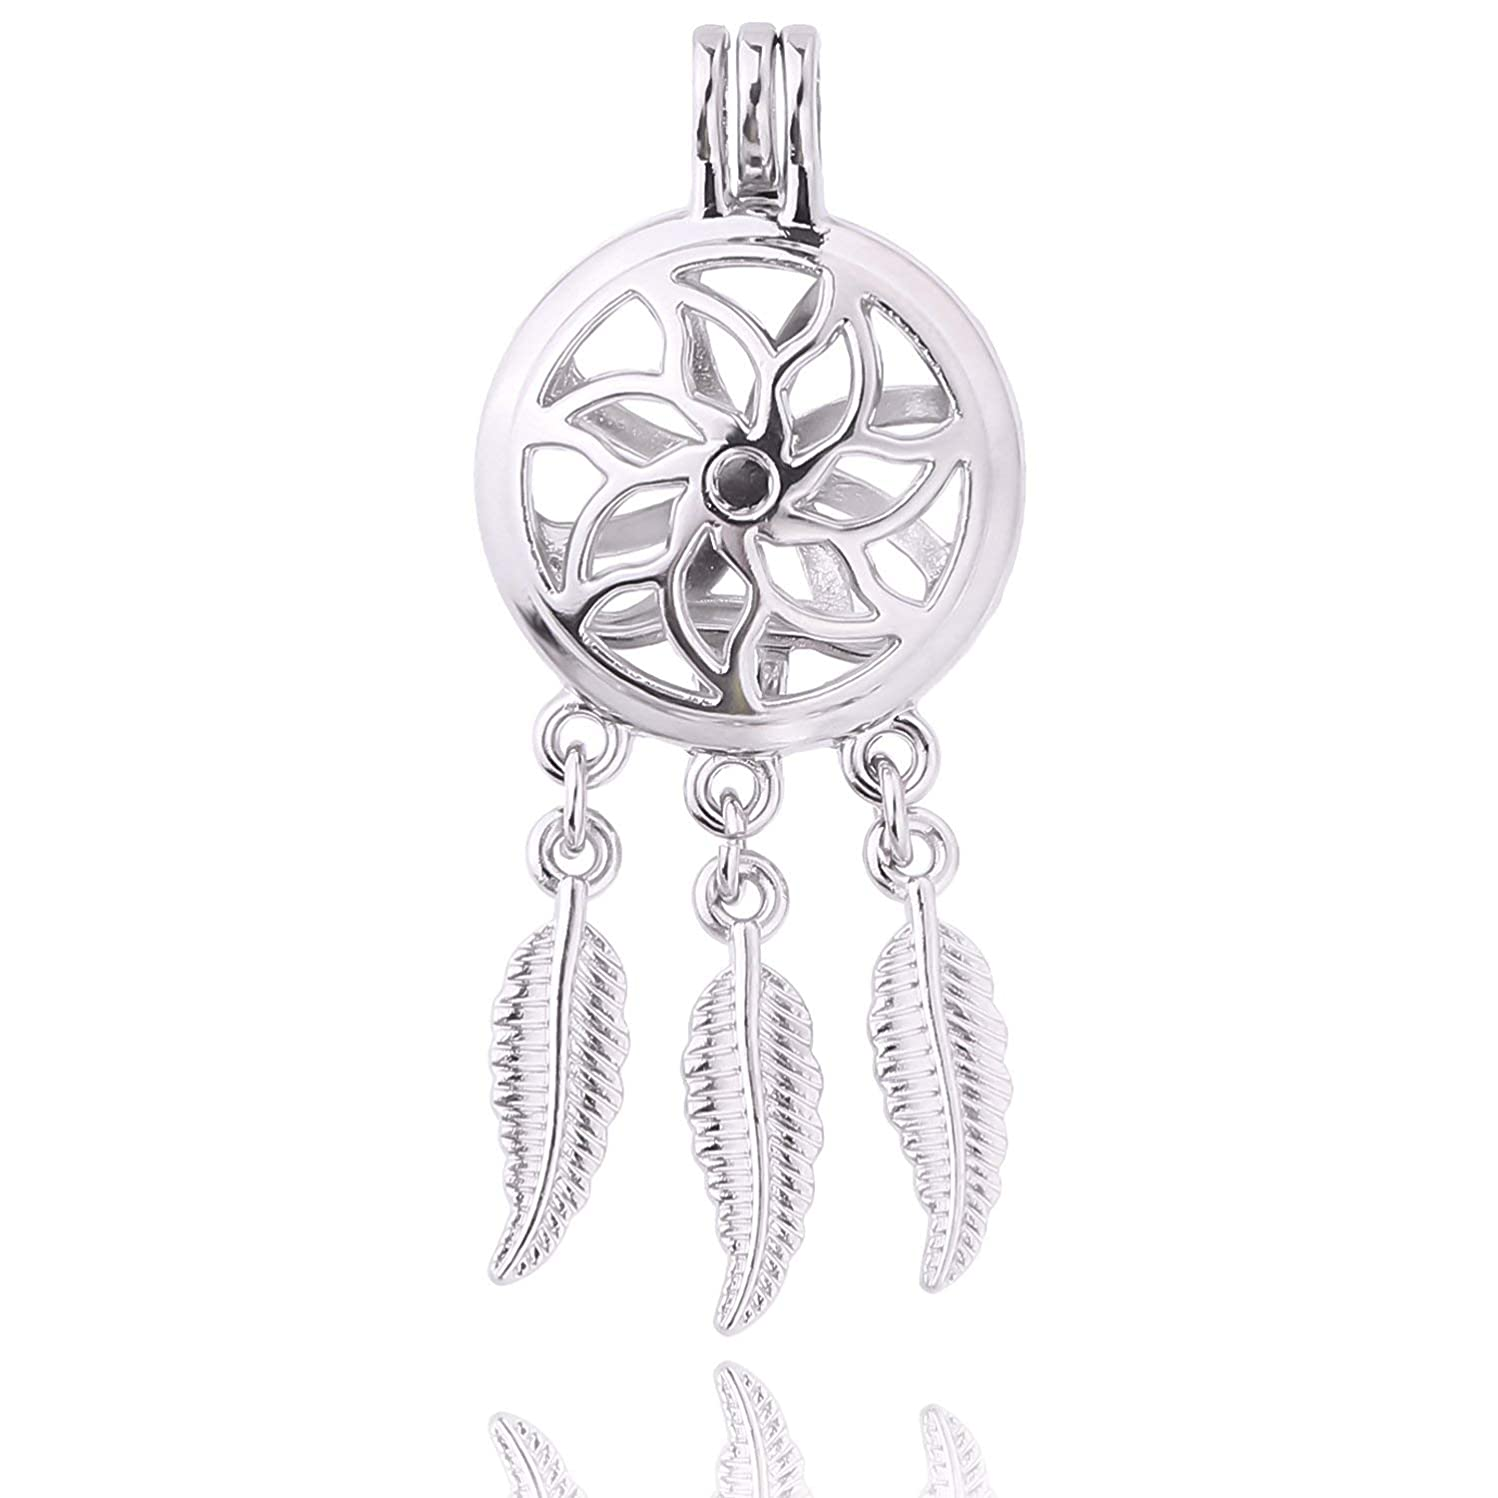 8pcs Dream Wish Catcher Pearl Cage Locket Pendant Jewelry Making - for Oyster Pearls, Essential Oil Diffuser, Fun Gifts (Style-11)